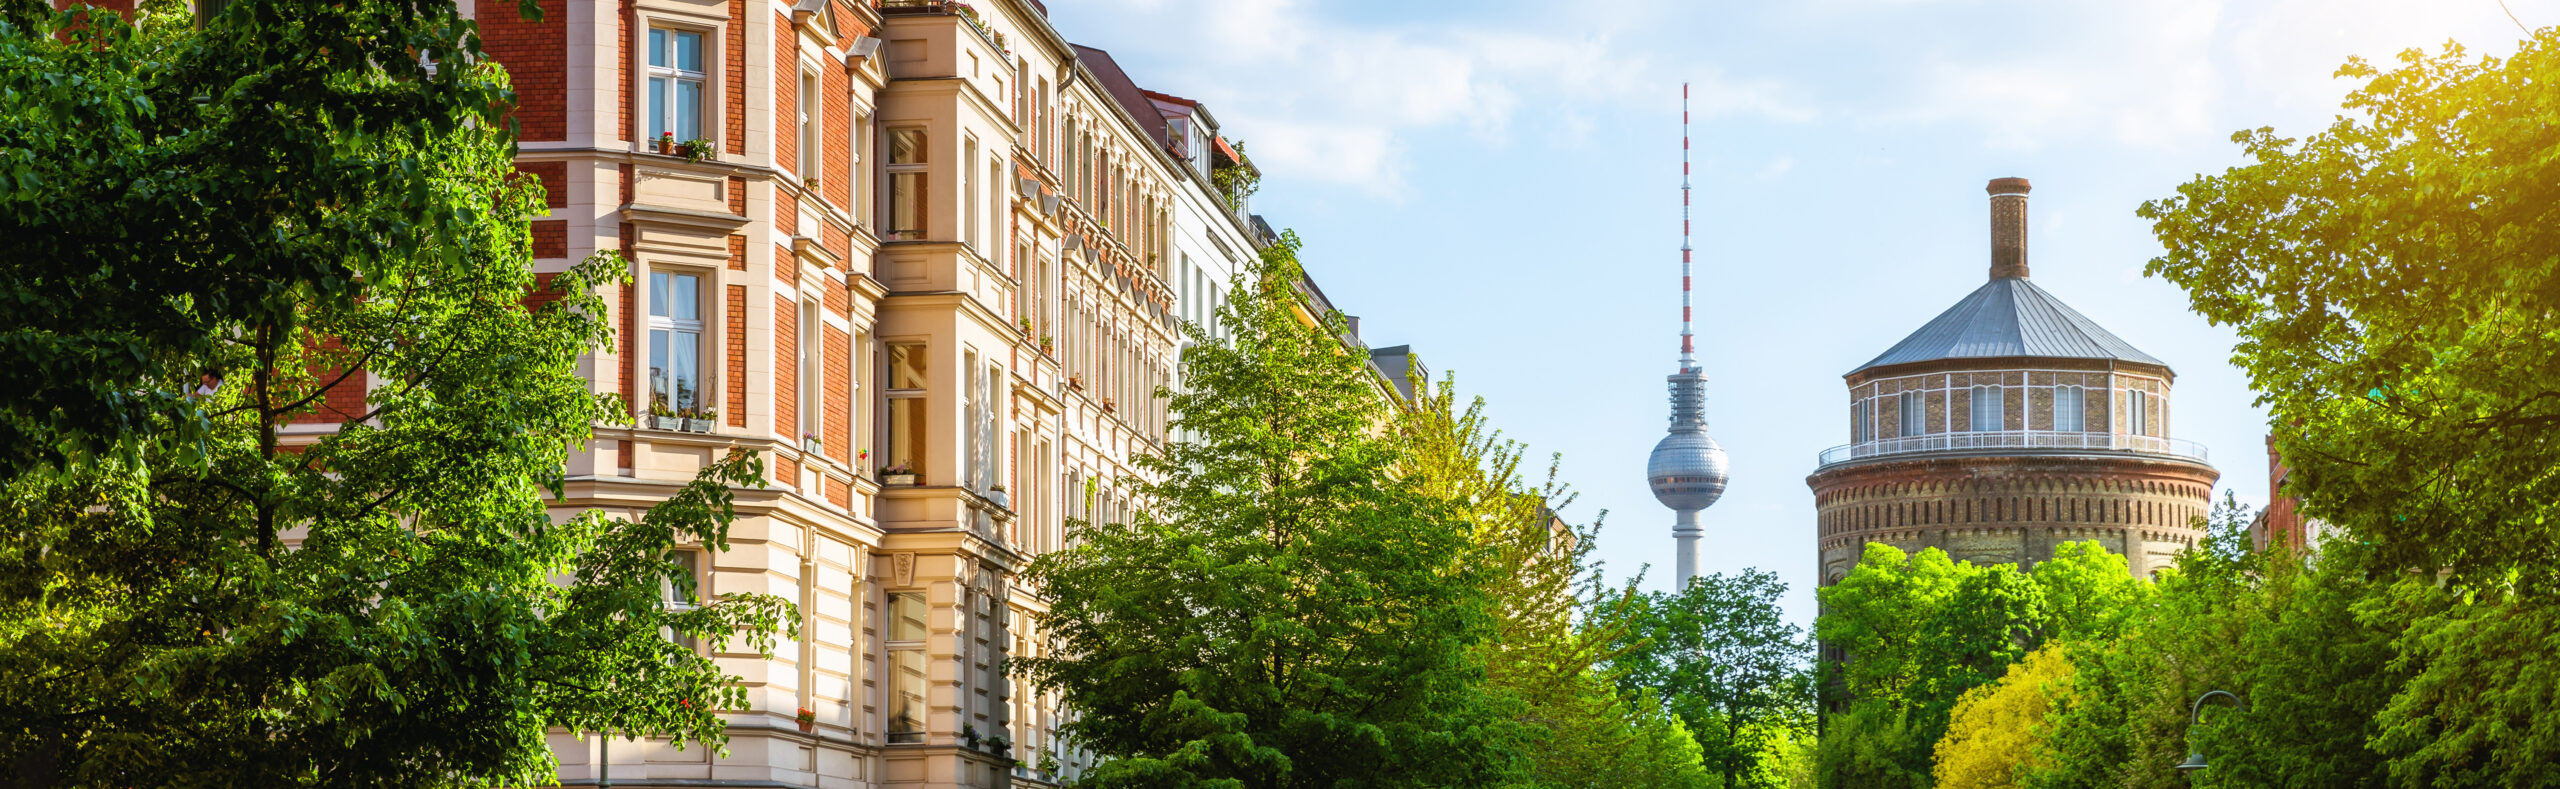 Berlin Prenzlauer Berg with TV Tower and old water tower